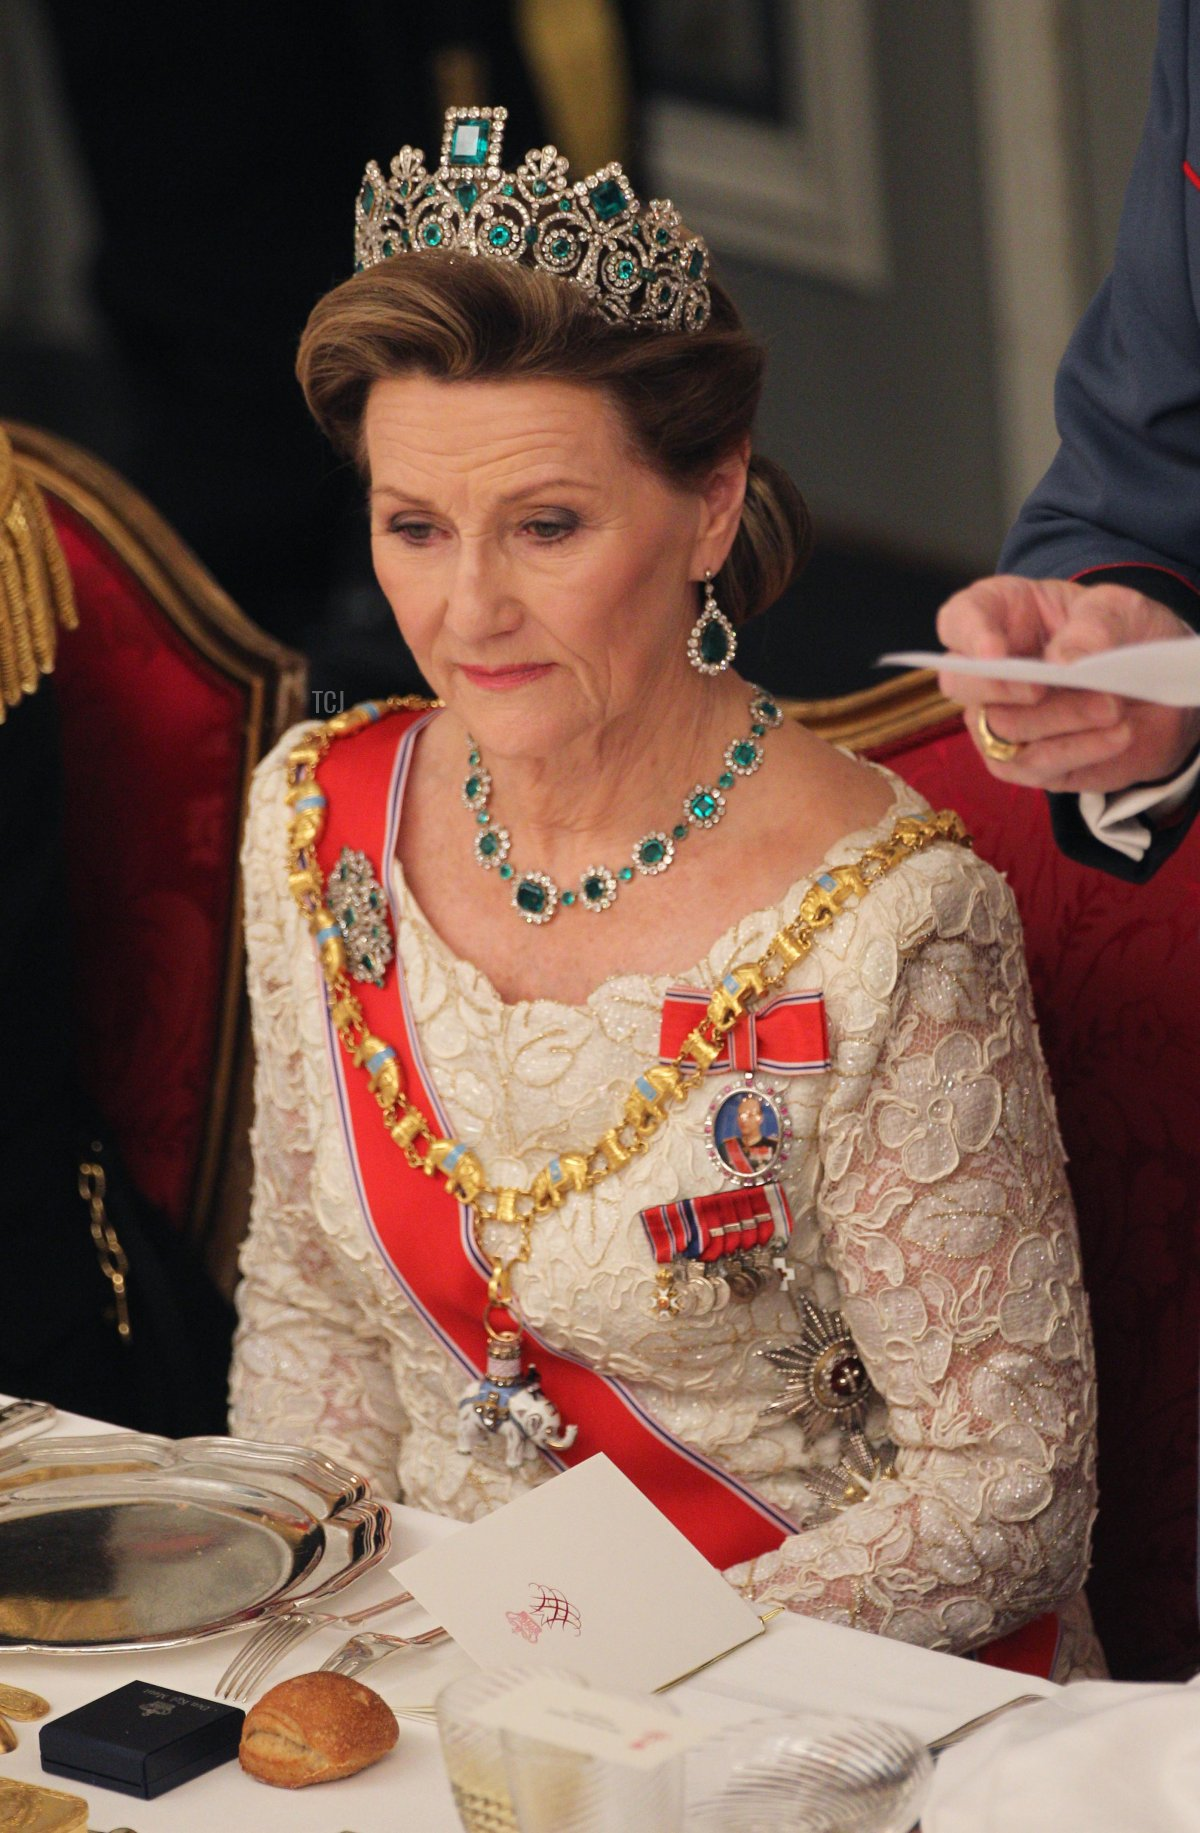 Queen Sonja of Norway attends a Gala Dinner to celebrate Queen Margrethe II of Denmark's 40 years on the throne at Christiansborg Palace Chapel on January 15, 2012